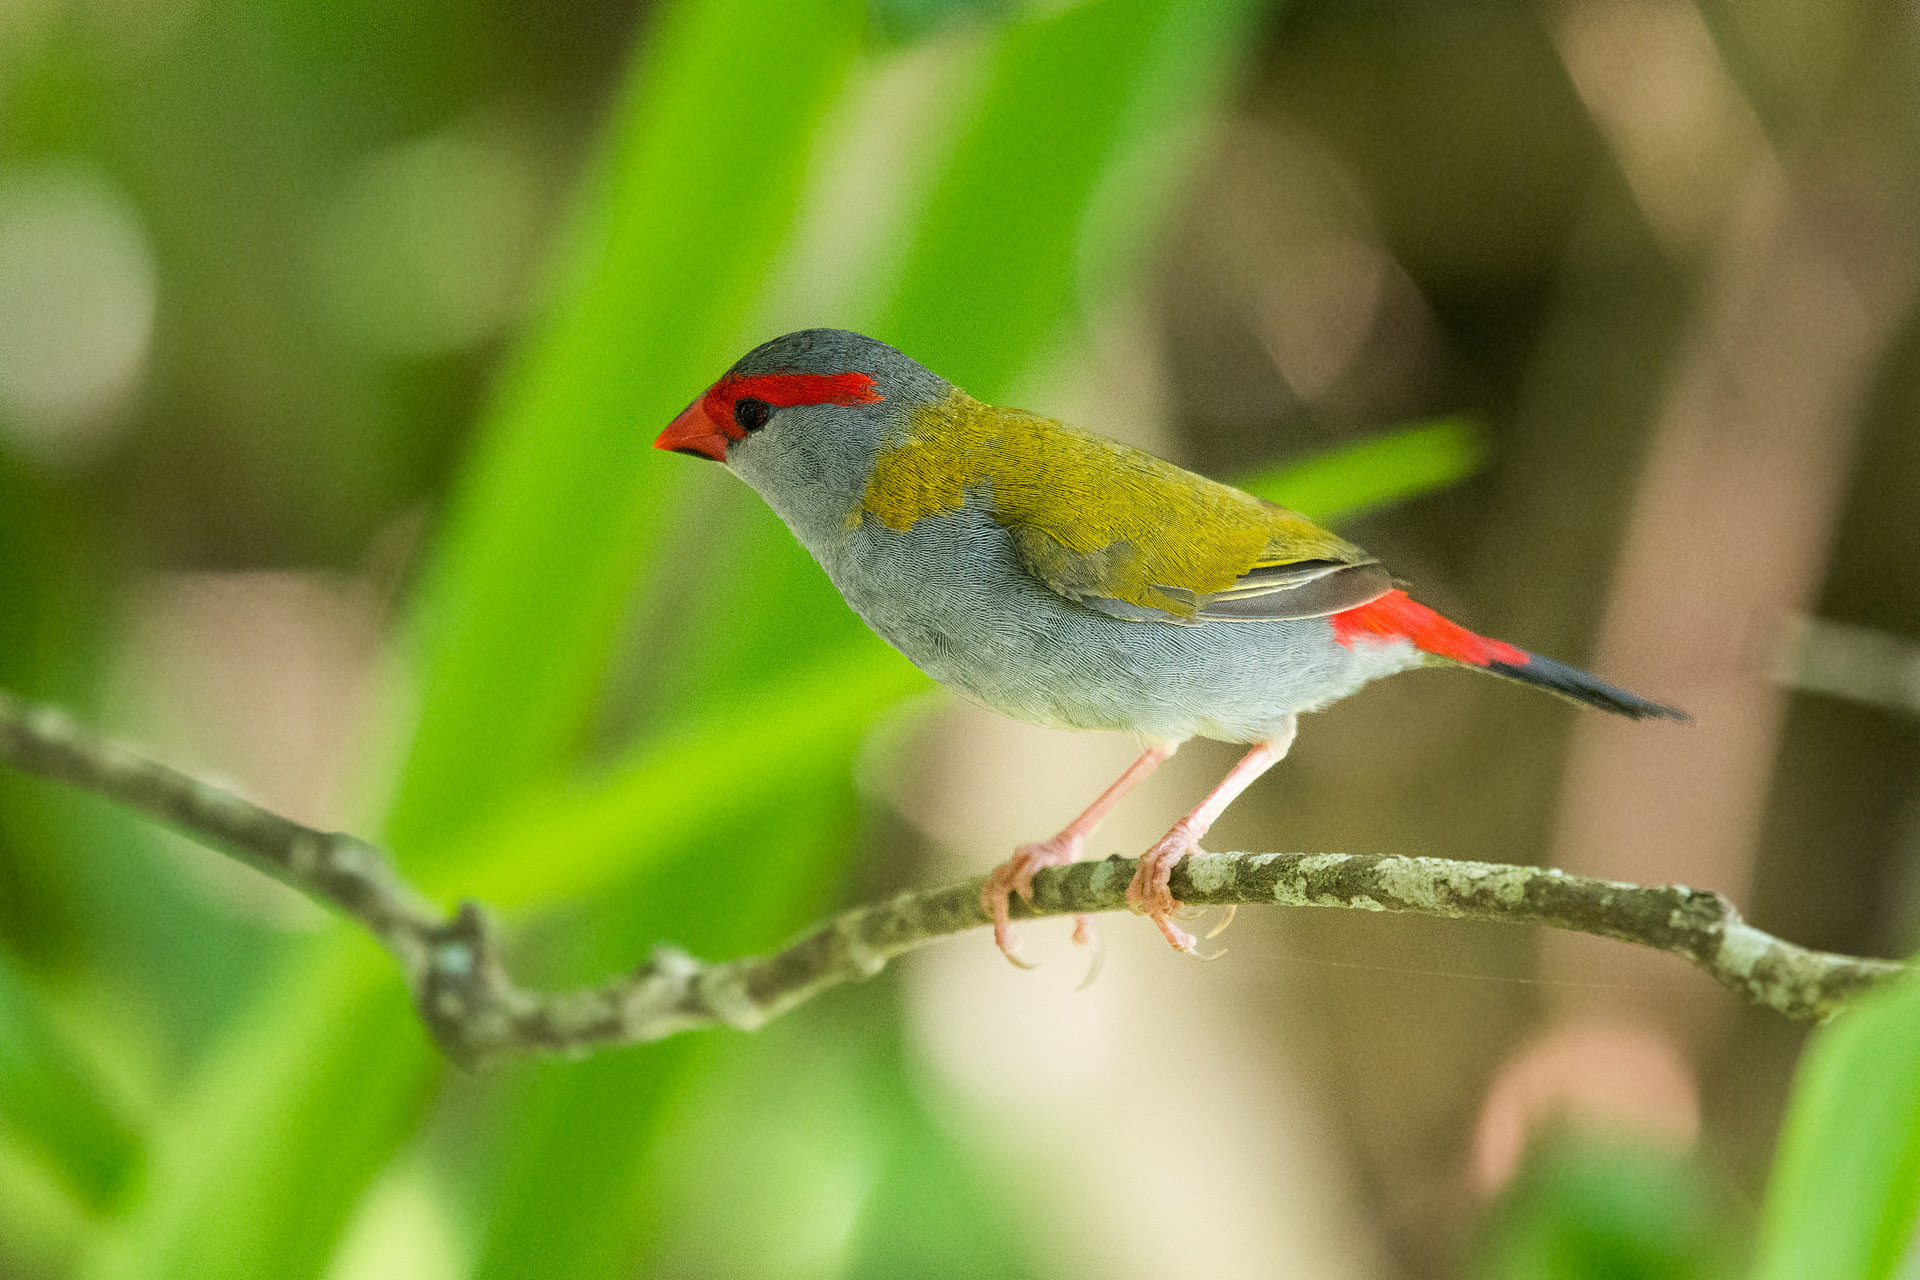 Red-browed firetail (finch)